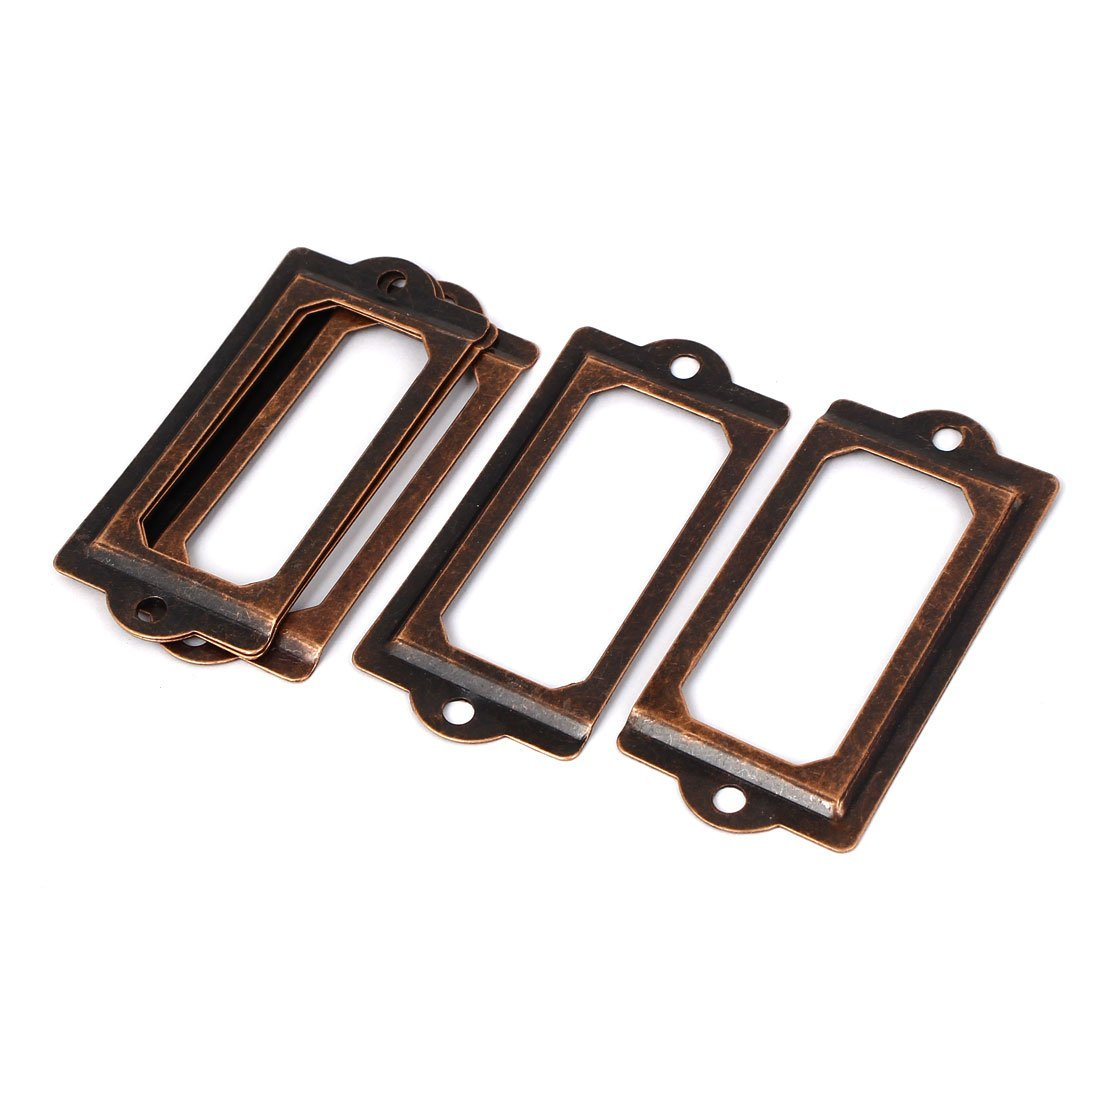 sourcingmap File Cabinet Chest 70x33mm Tag Label Holders Frame Copper Tone 5pcs a16032900ux1216